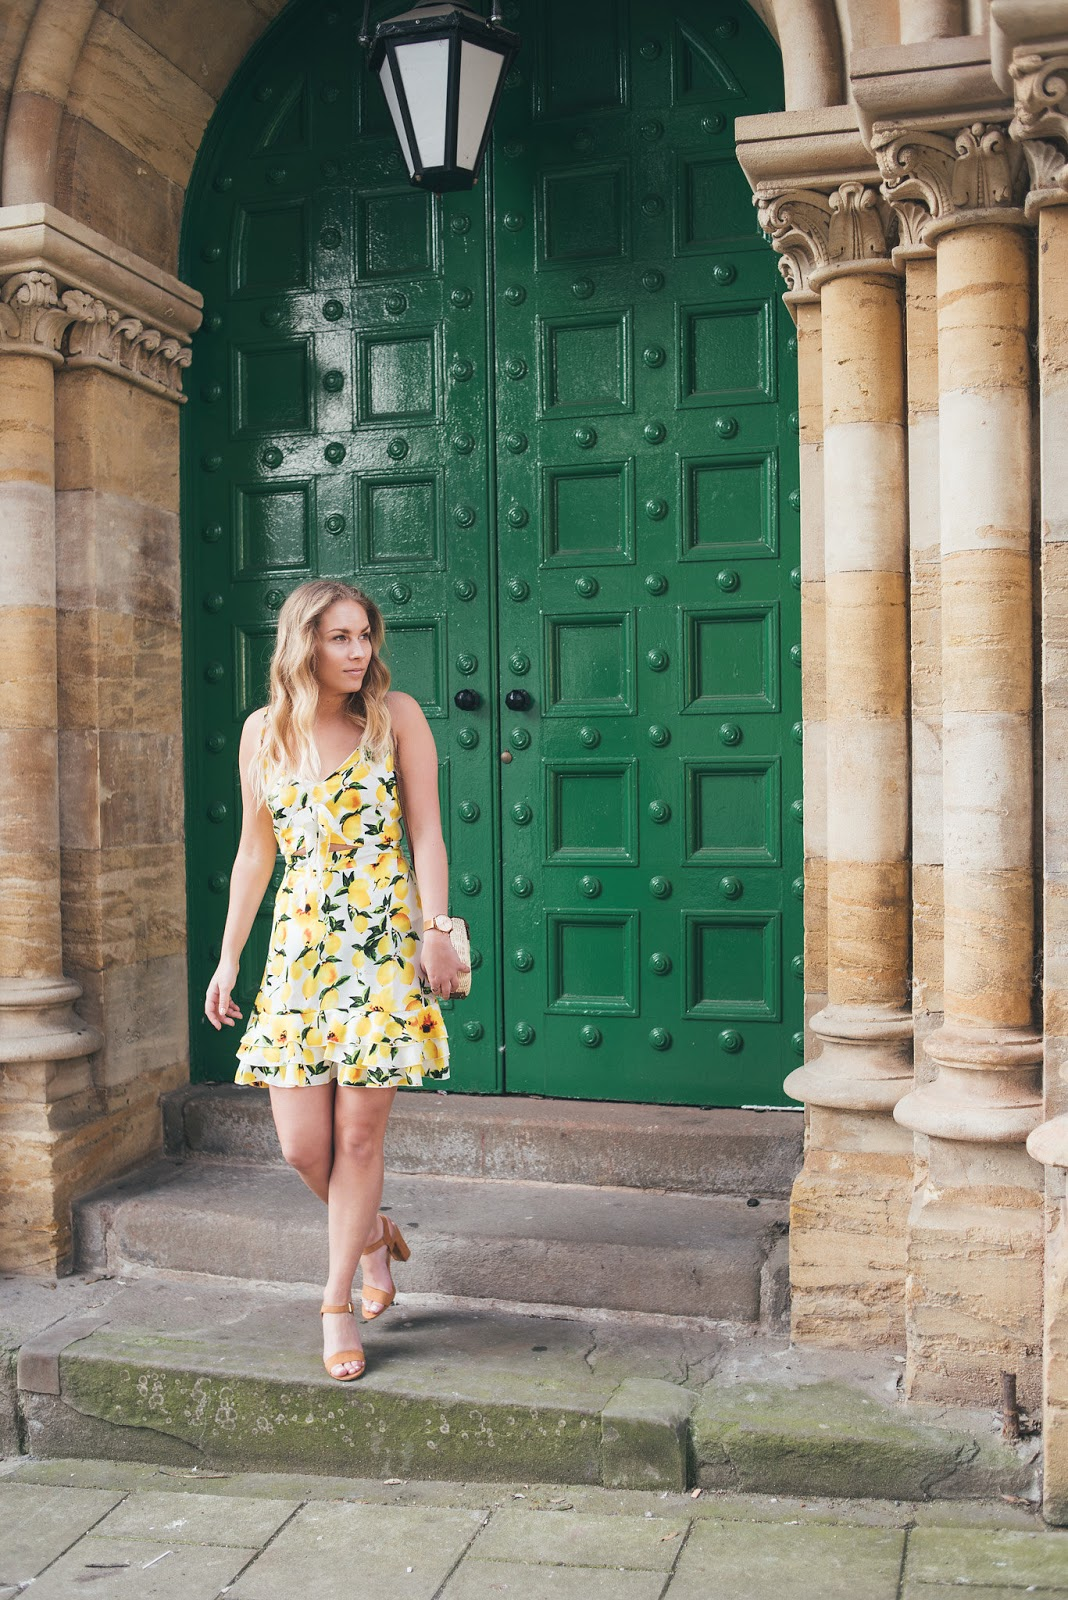 Rachel Emily in Lemon Print Dress leaving building with large ornate green door and stone columns either side